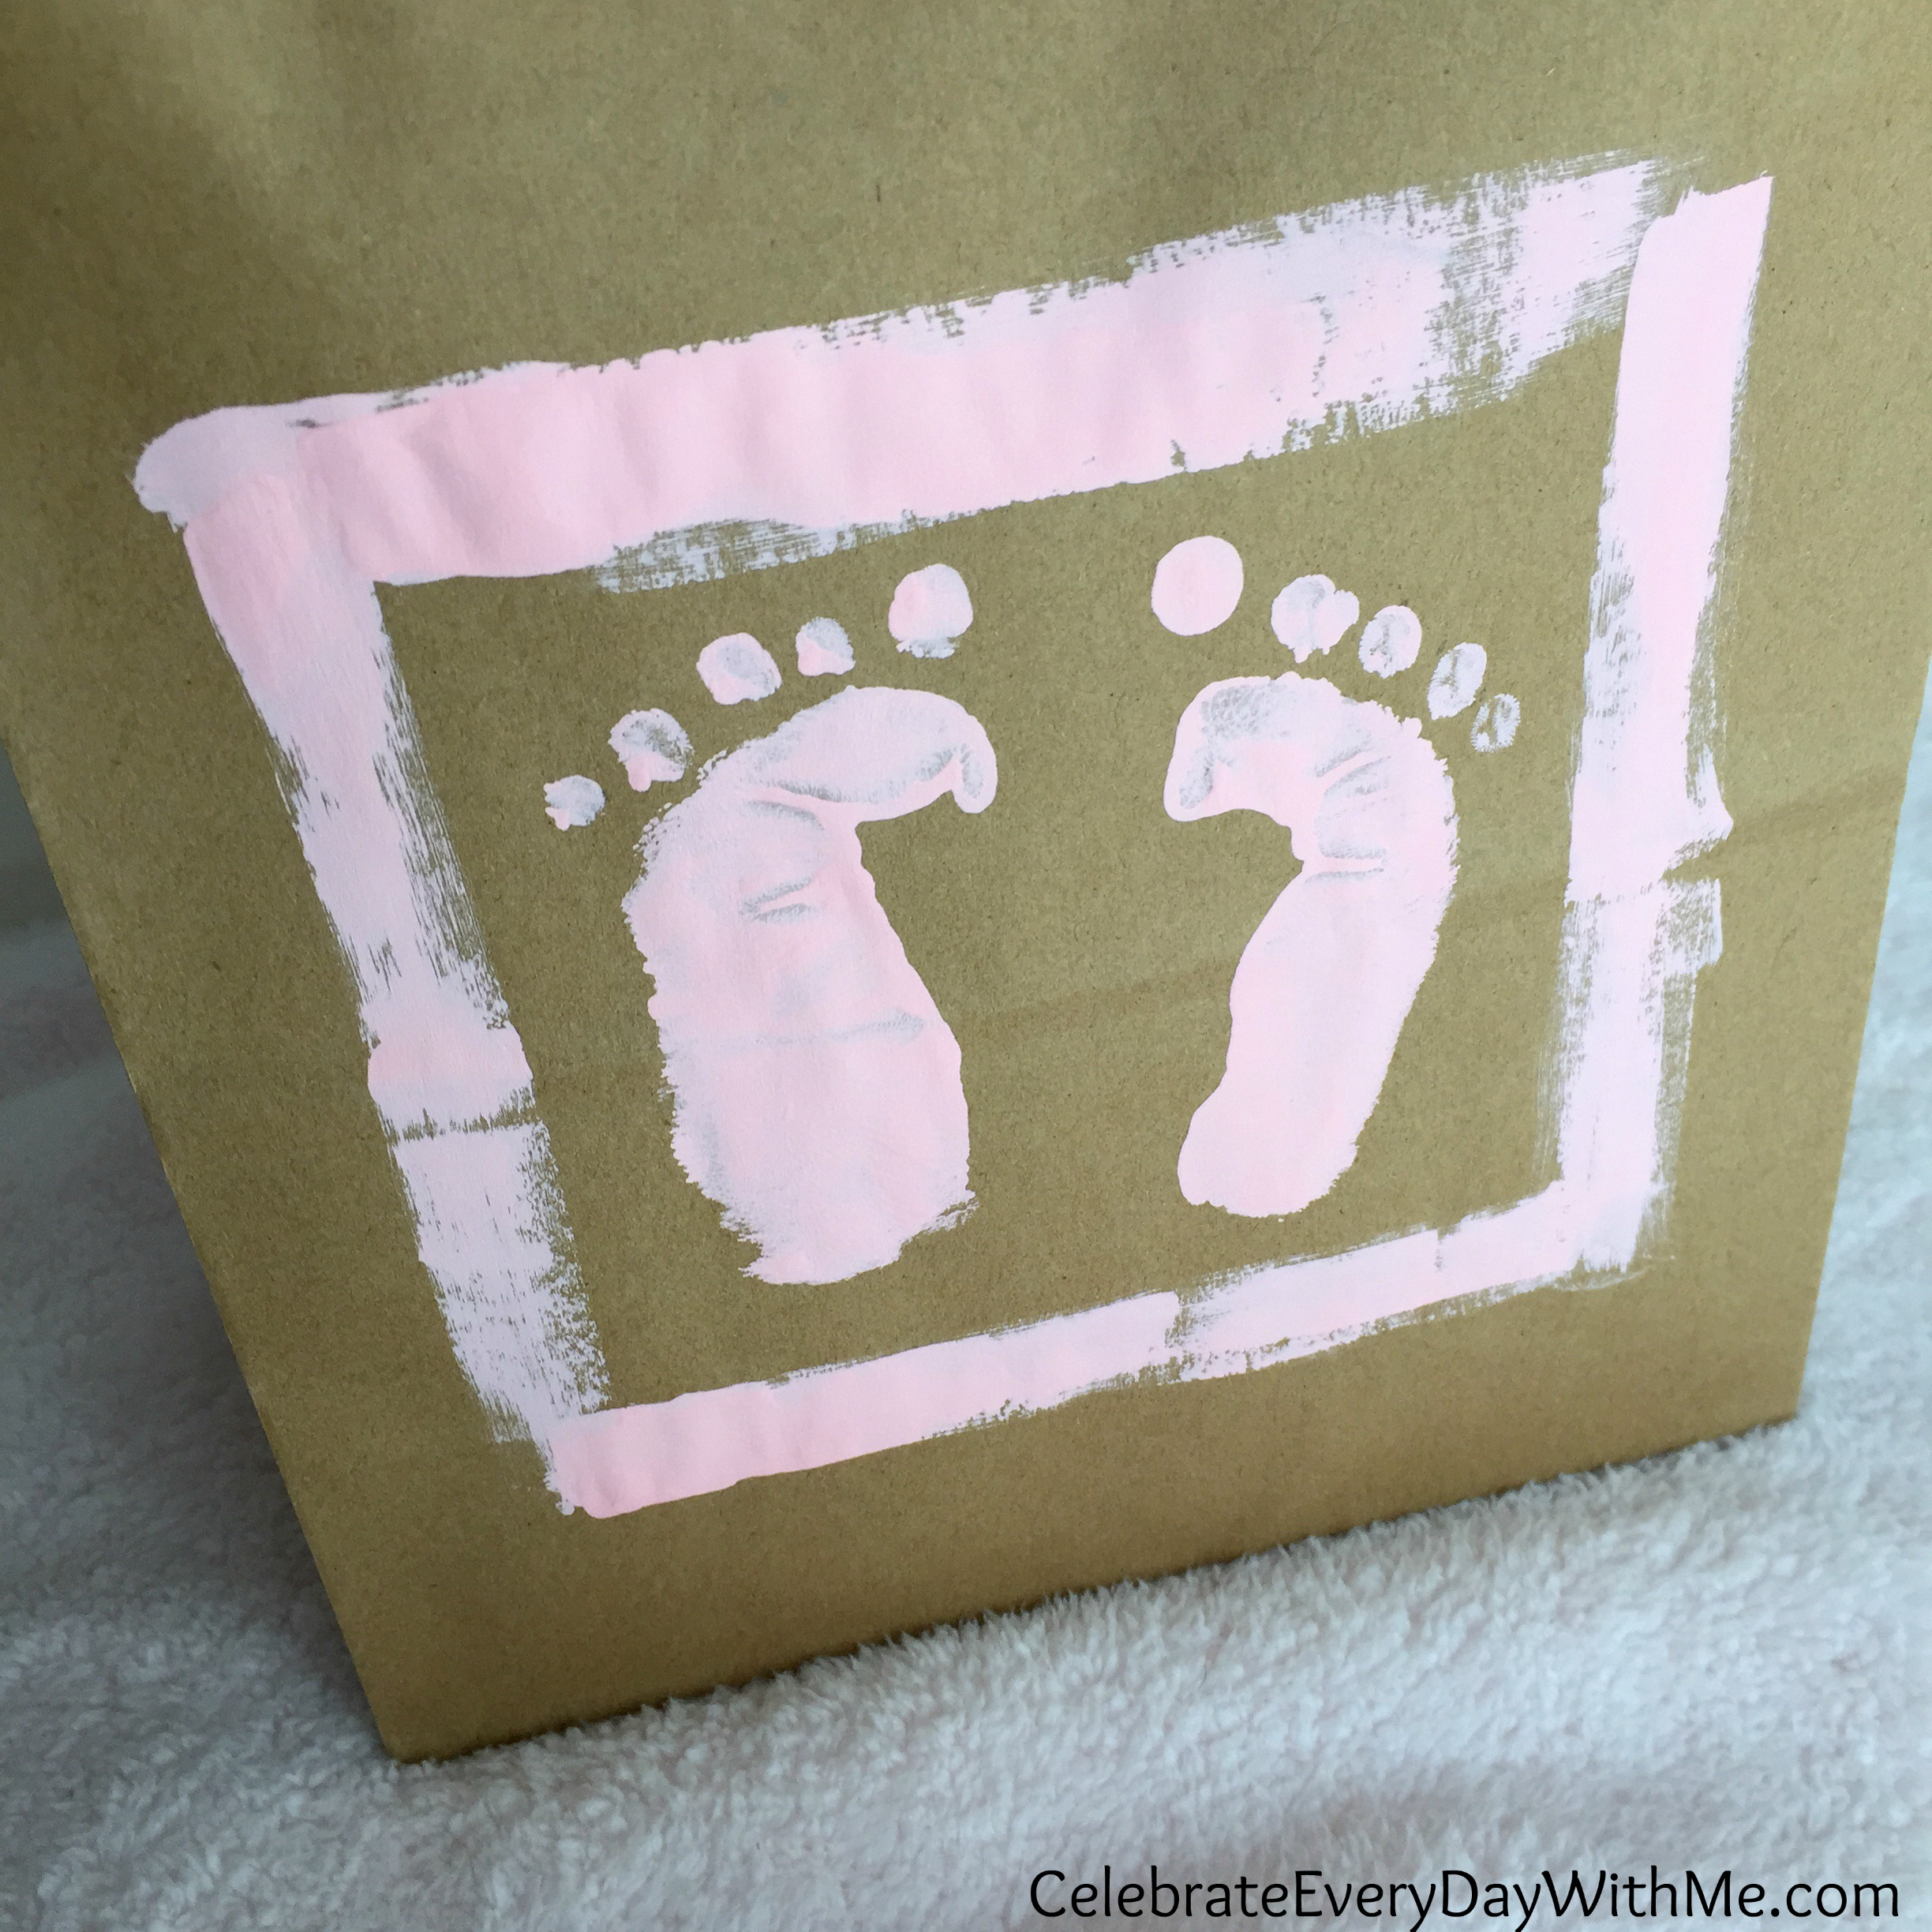 Charming Your Hand How To Make Baby Footprints Me Baby Footprint Png Baby Foot Print Images Your Hand Celebrate Every Day Make A Baby Footprint baby Baby Foot Print